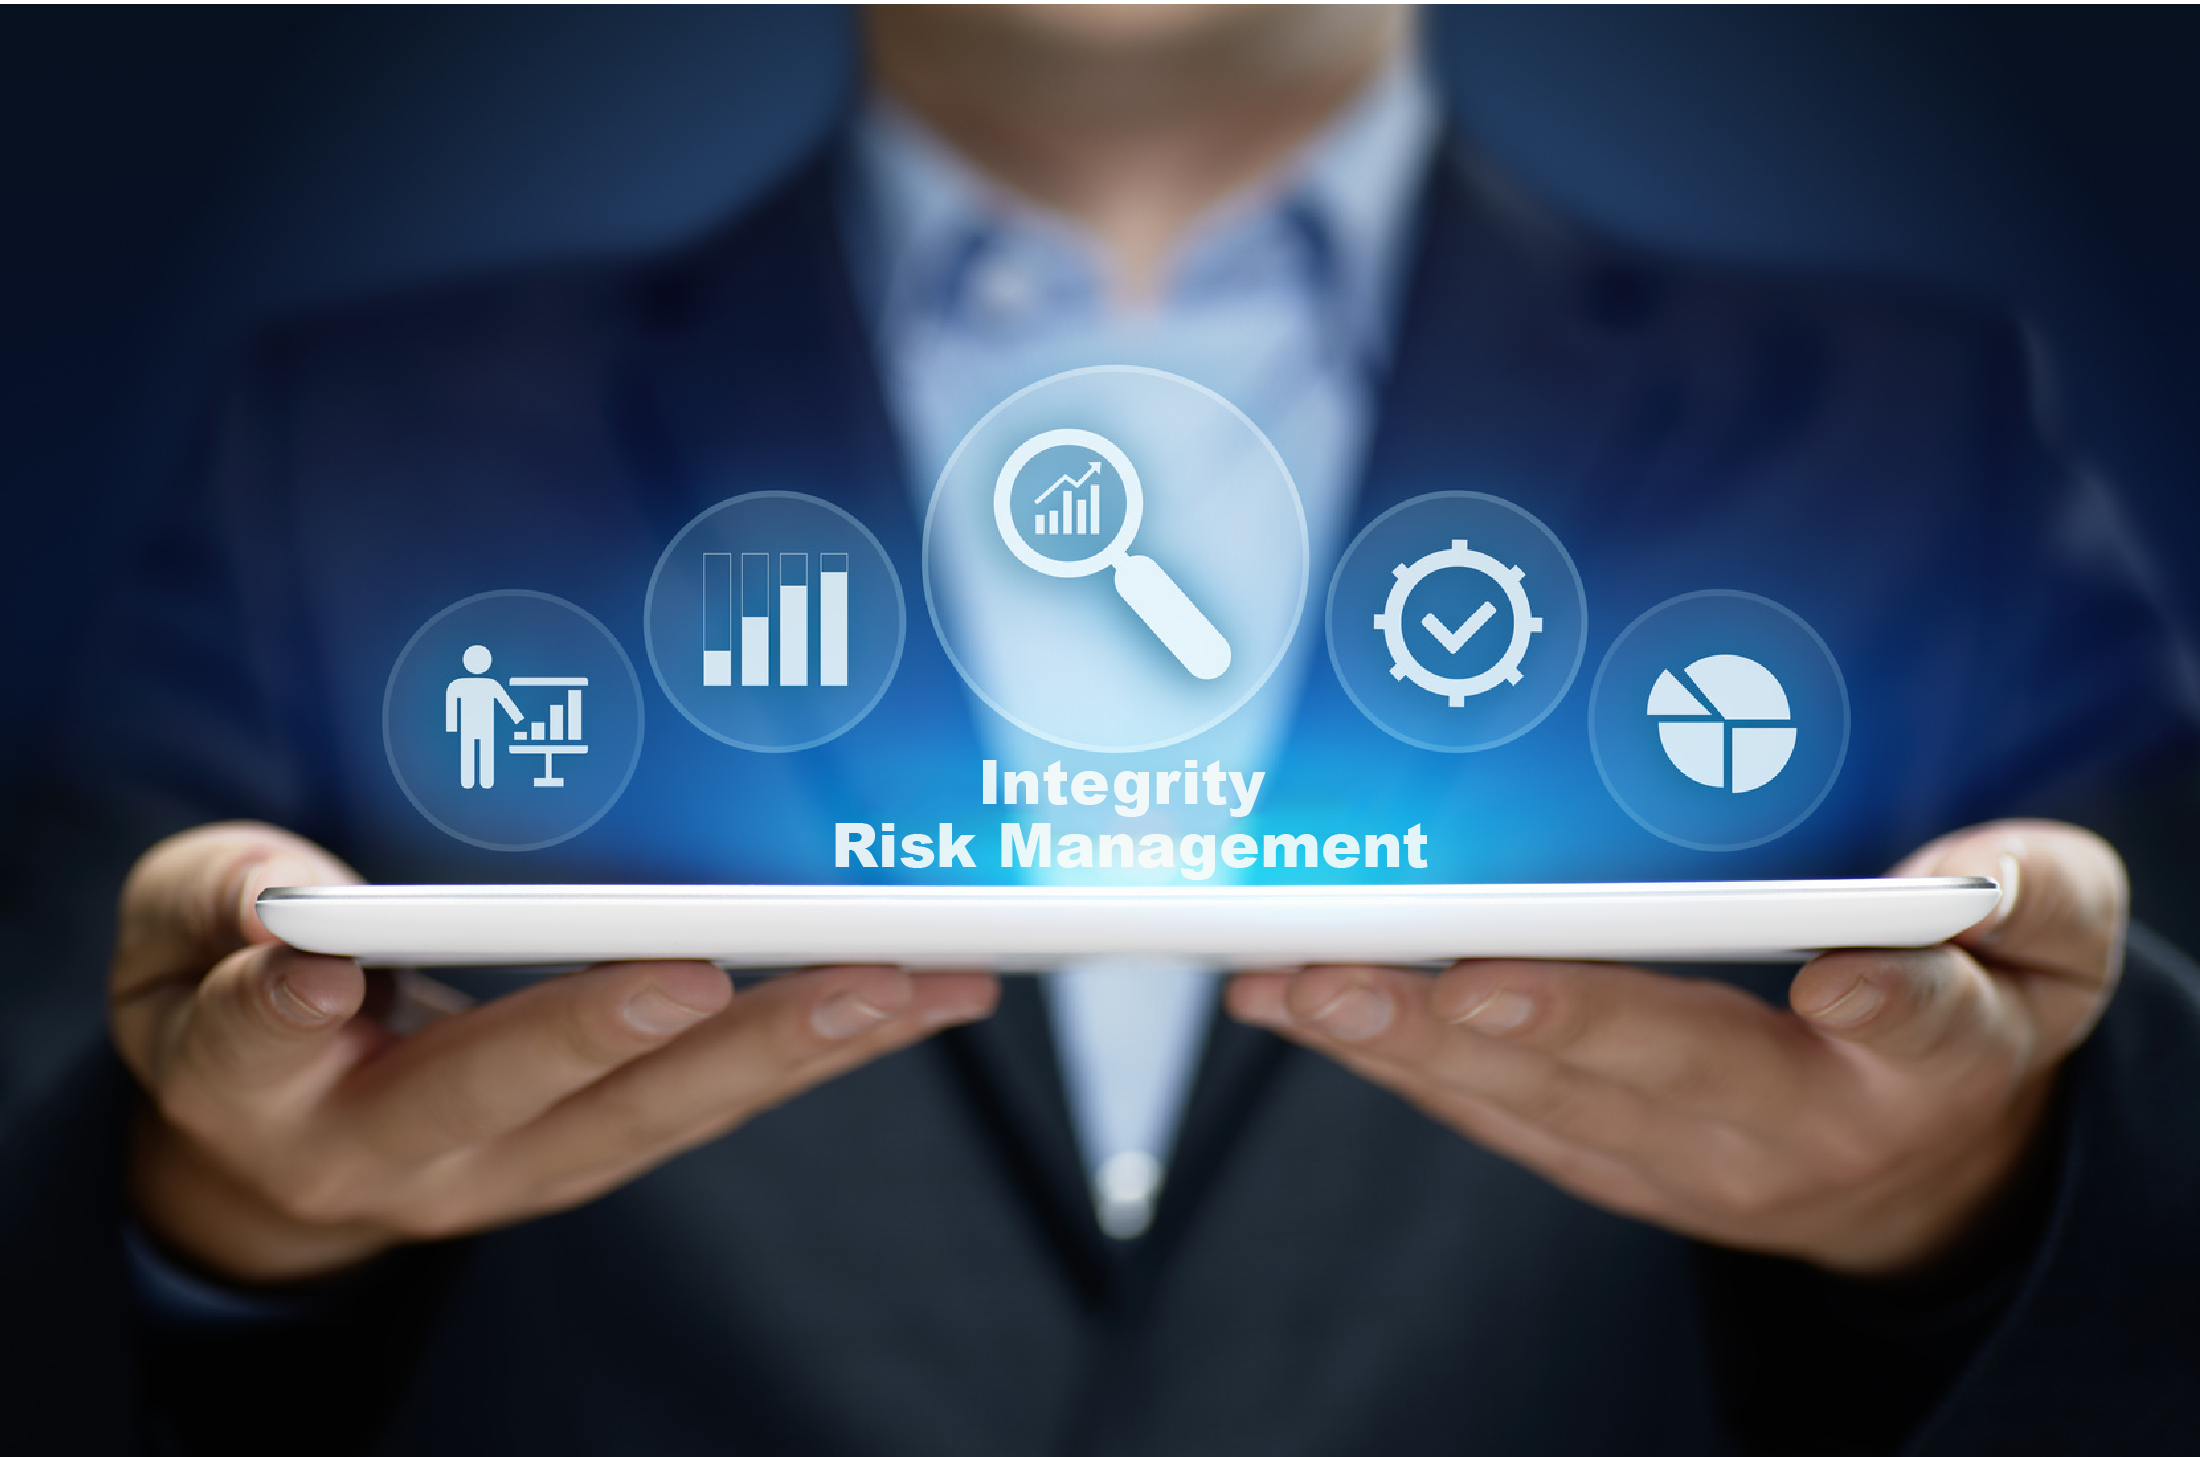 The Importance of Managing Integrity Risk